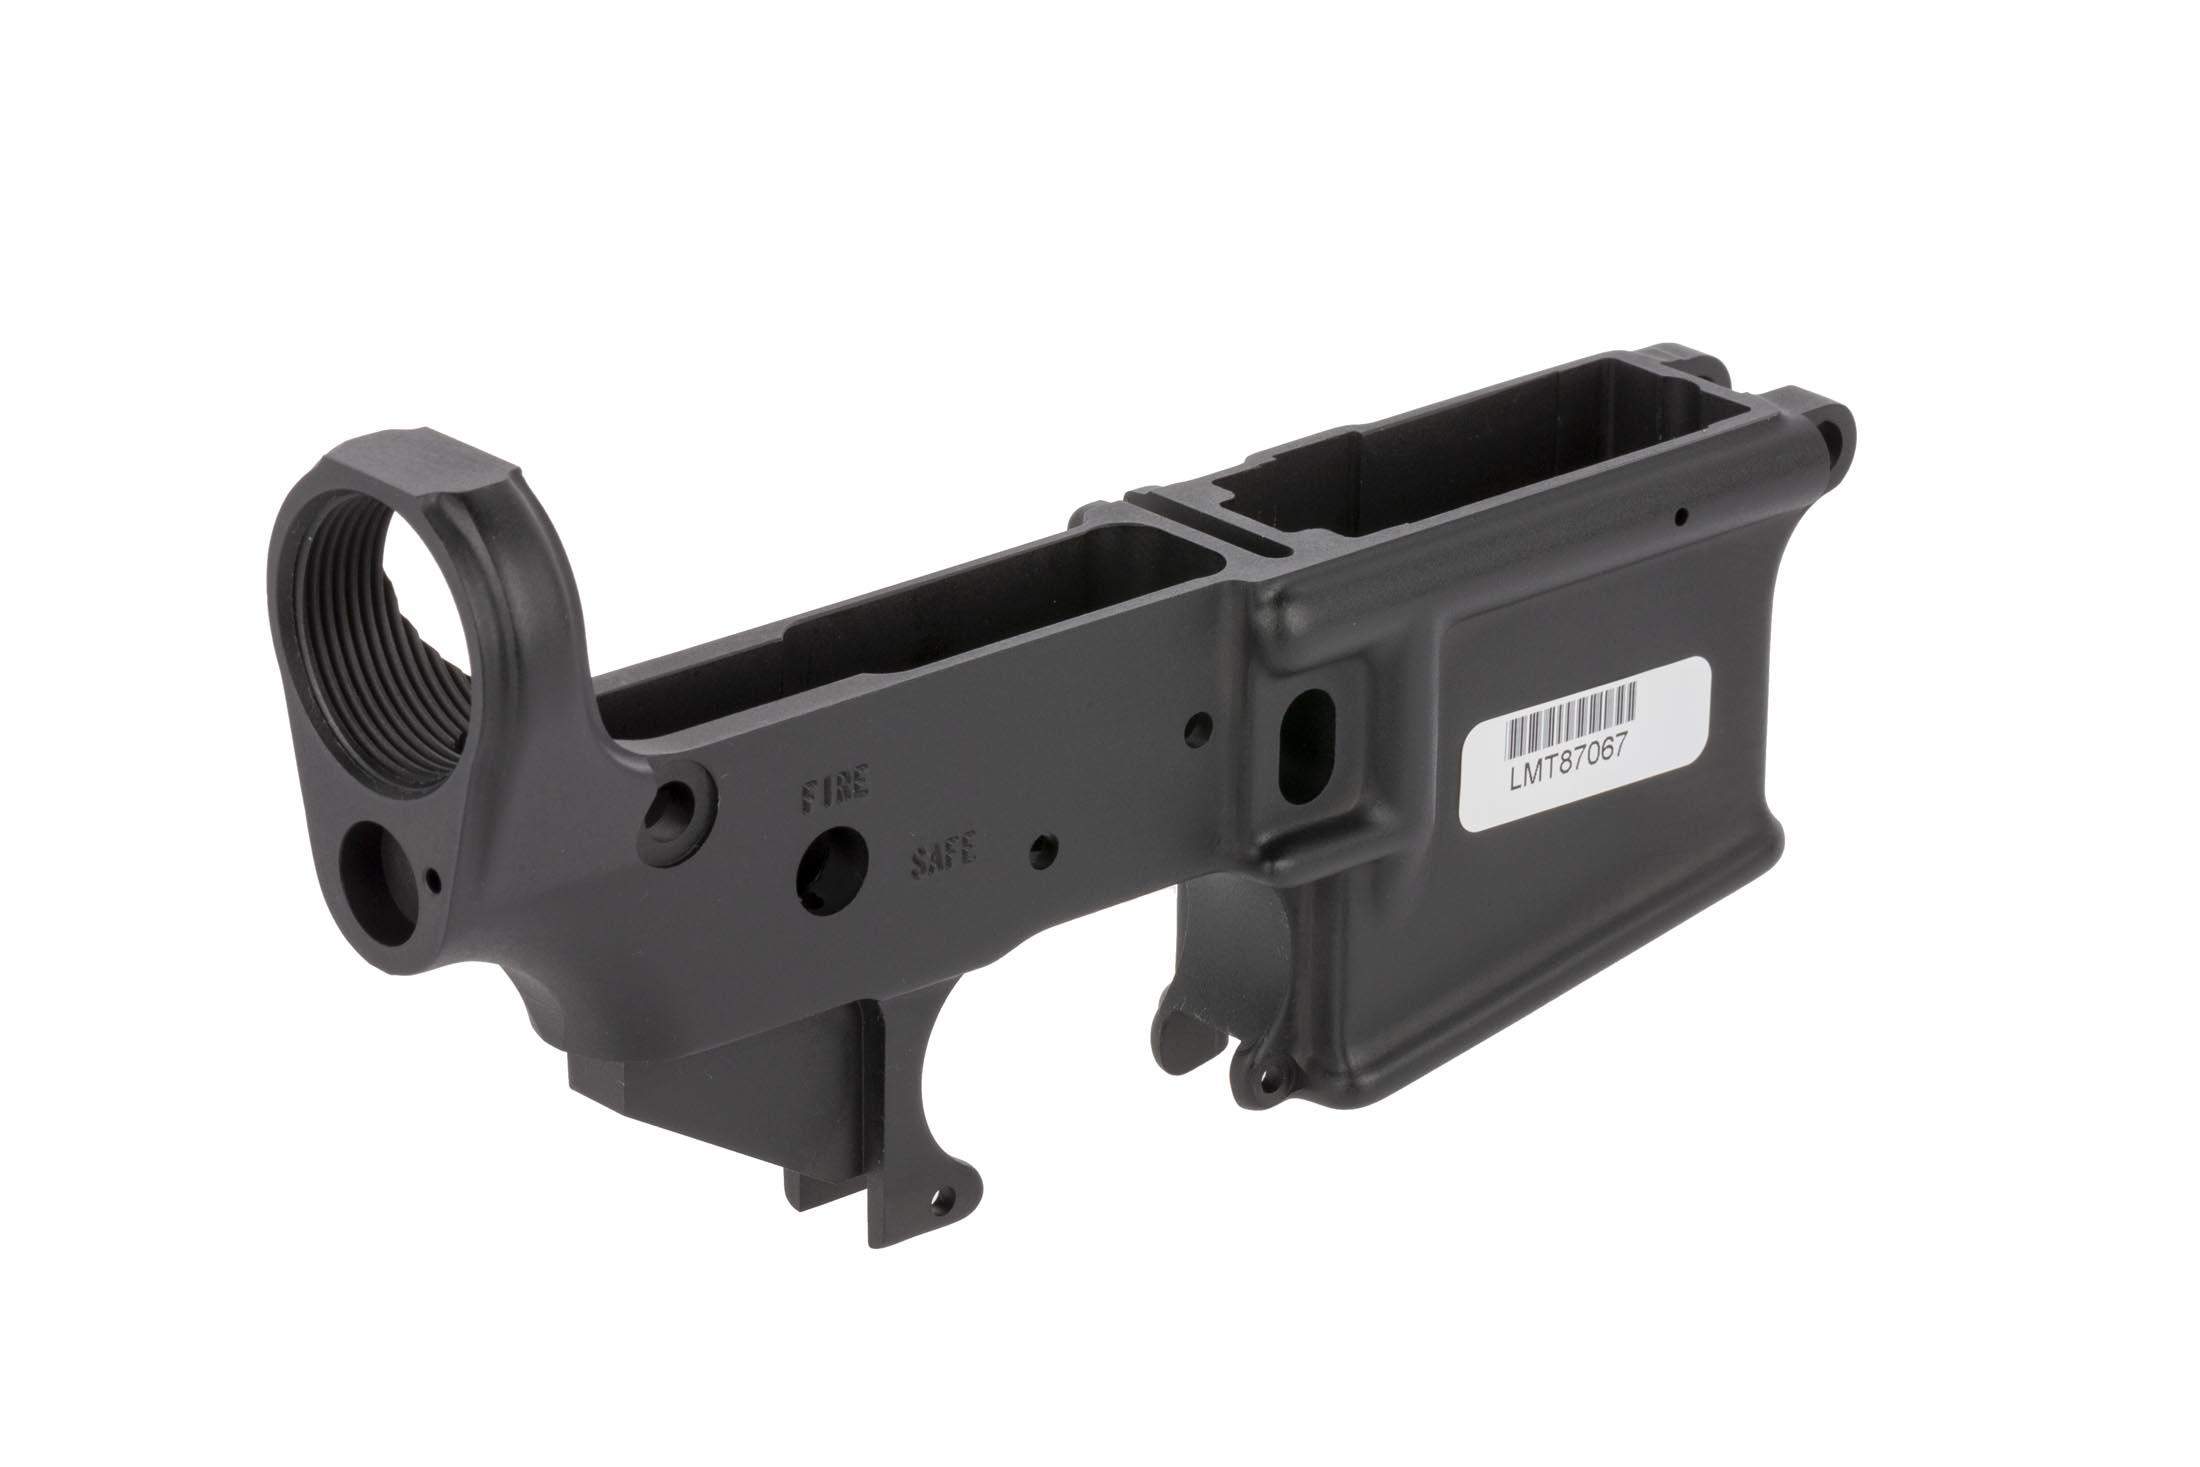 The Lewis Machine & Tool Defender stripped ar-15 lower receiver is forged out of 7075 aluminum